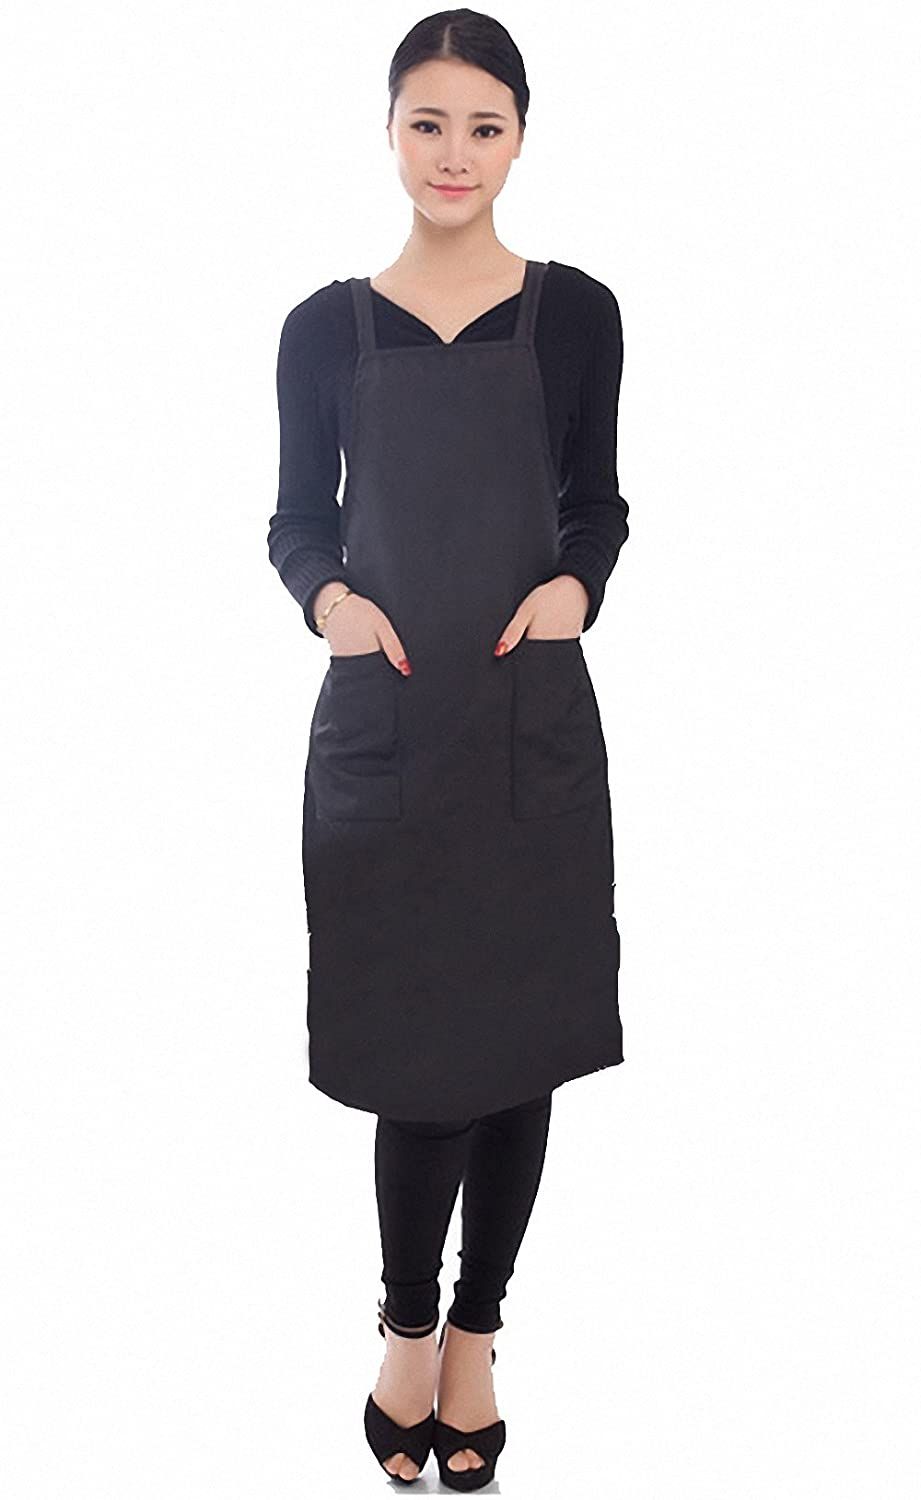 Black Hair Salon Apron, Barber Smock, with Two Front Pockets Perfe Hair SW003